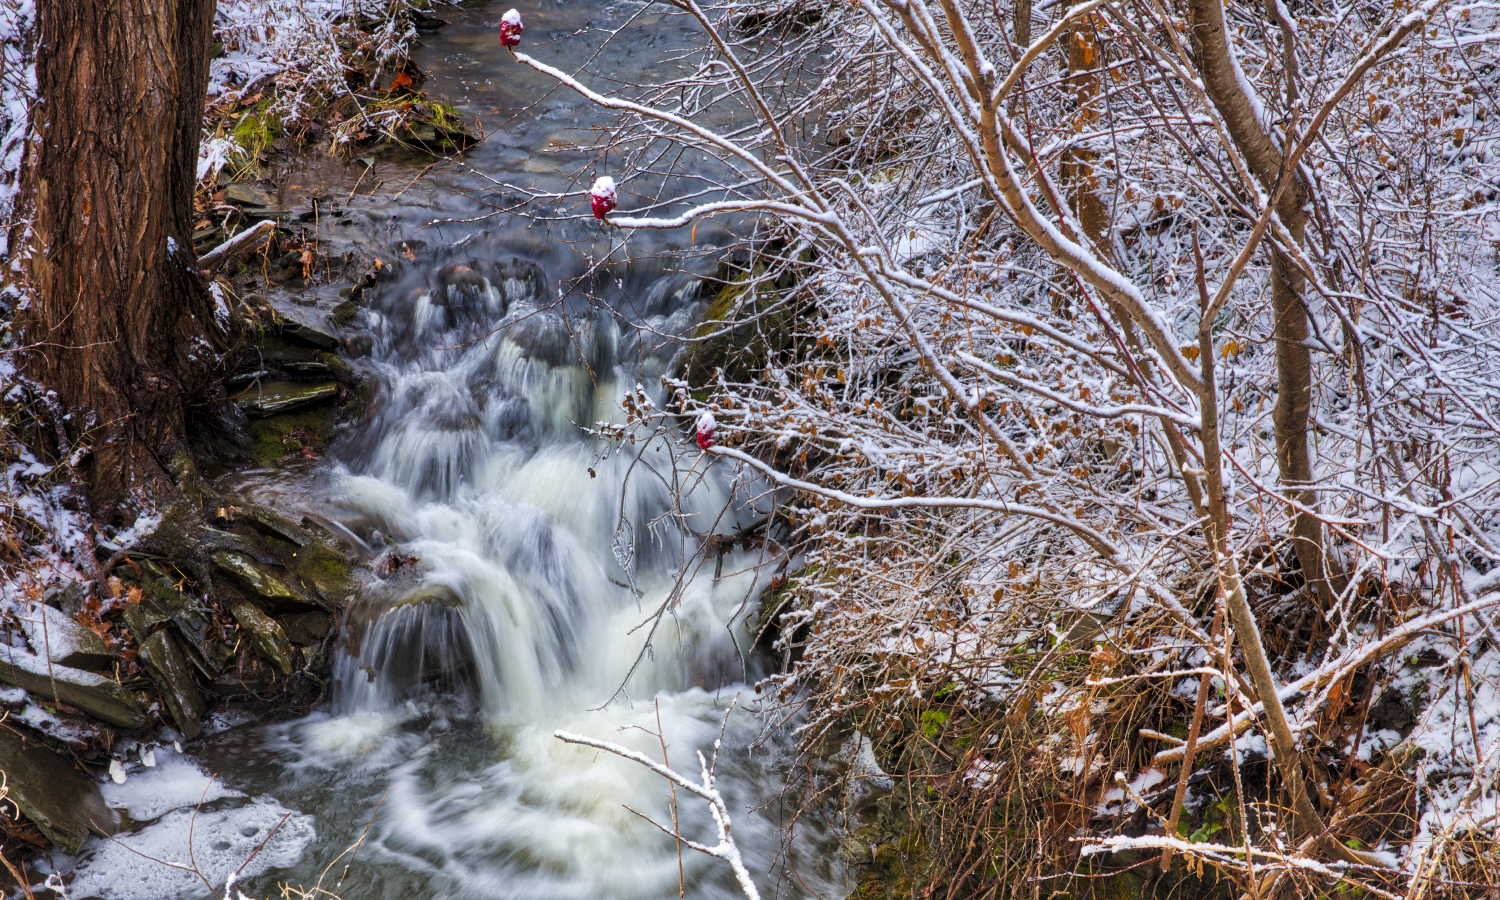 Amid a dusting of snow, a stream rushes through the woods in Trumansburg, N.Y.